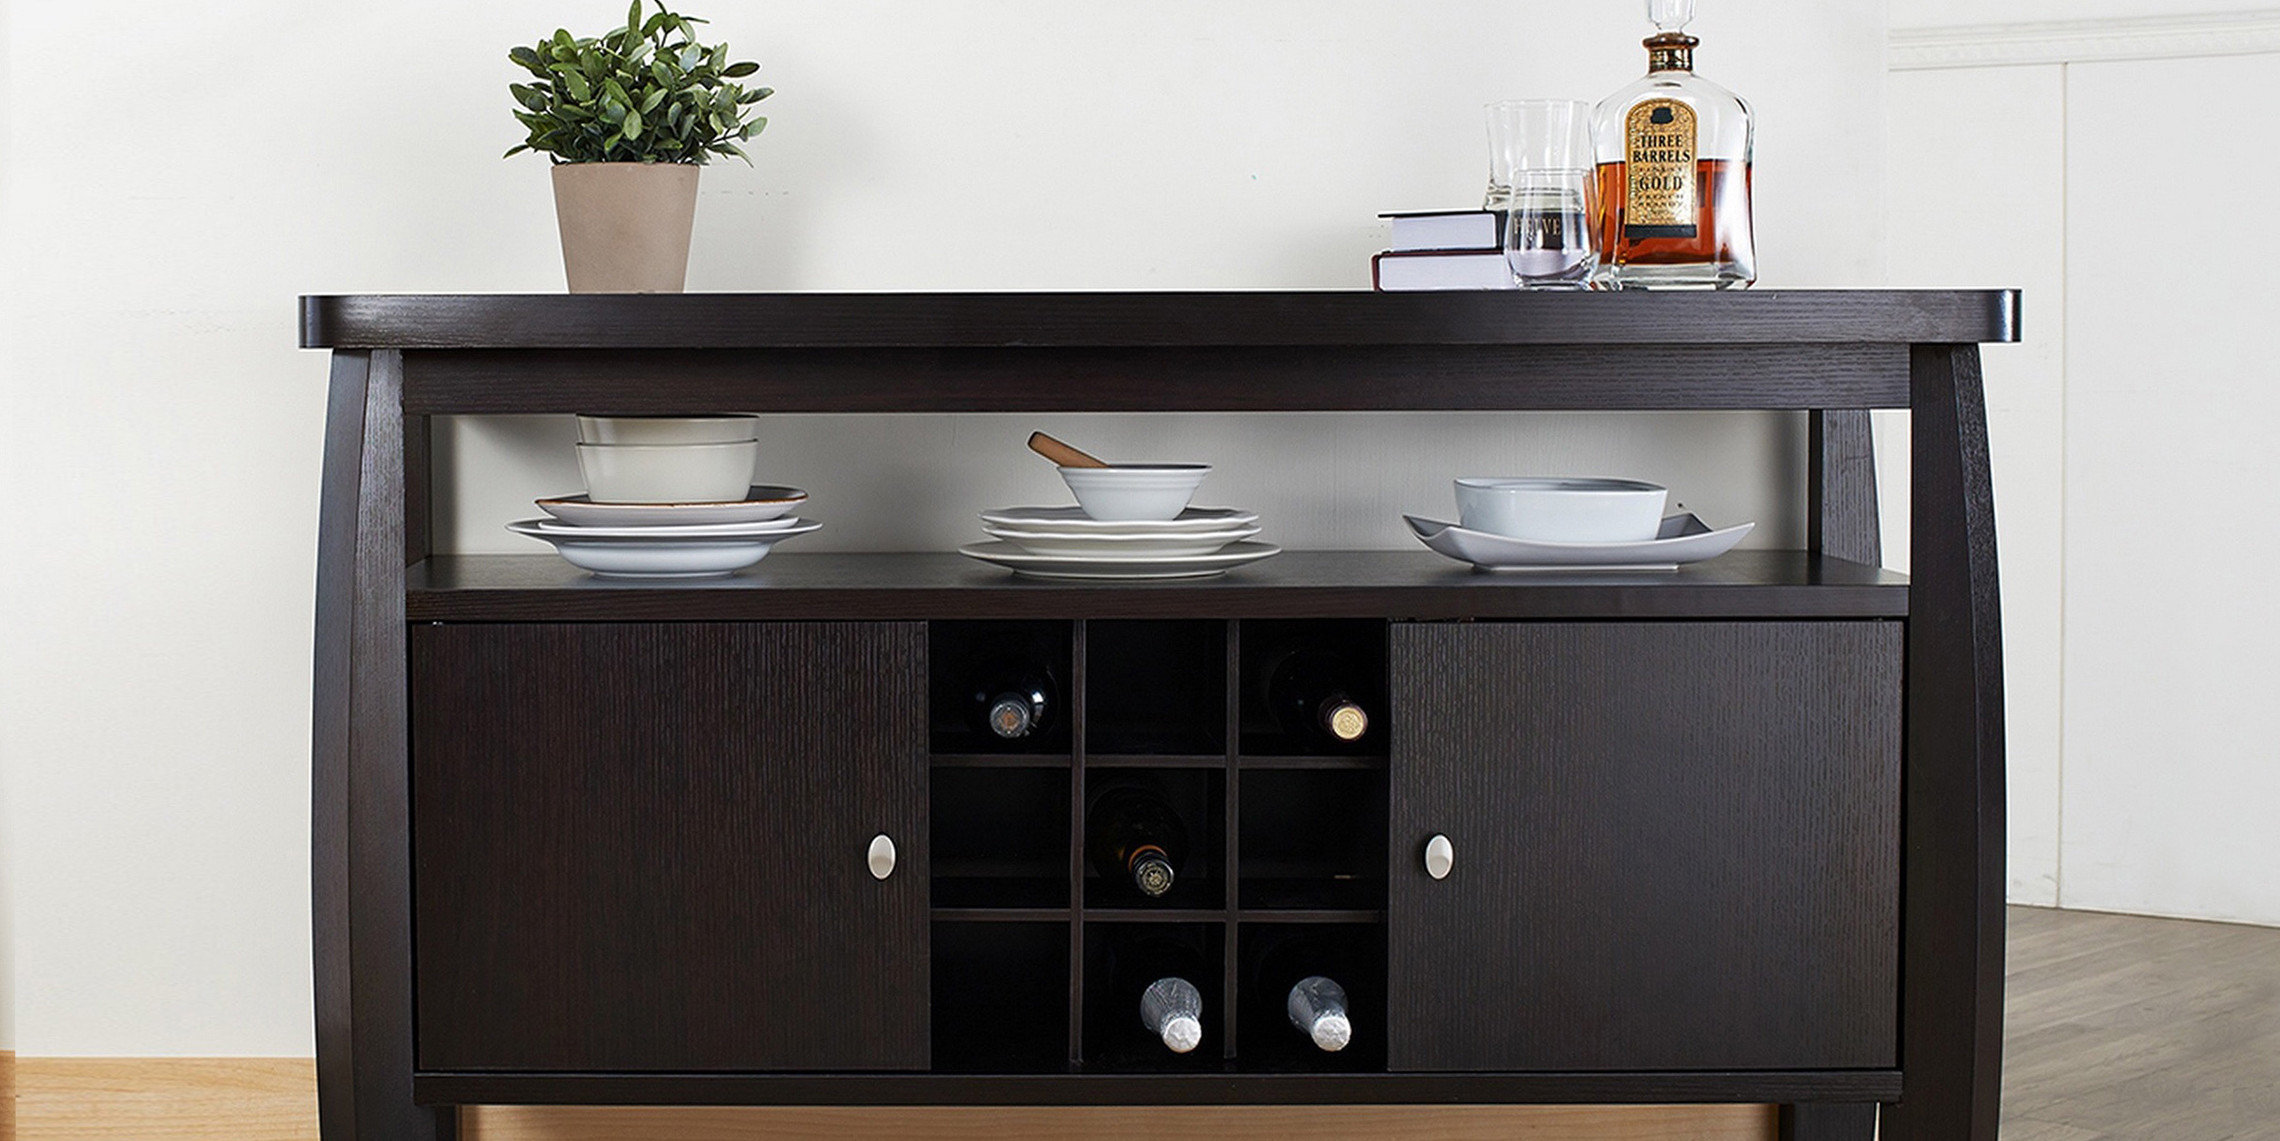 Best ideas about Dining Room Sideboard . Save or Pin 11 Best Sideboards and Buffets in 2018 Reviews of Now.